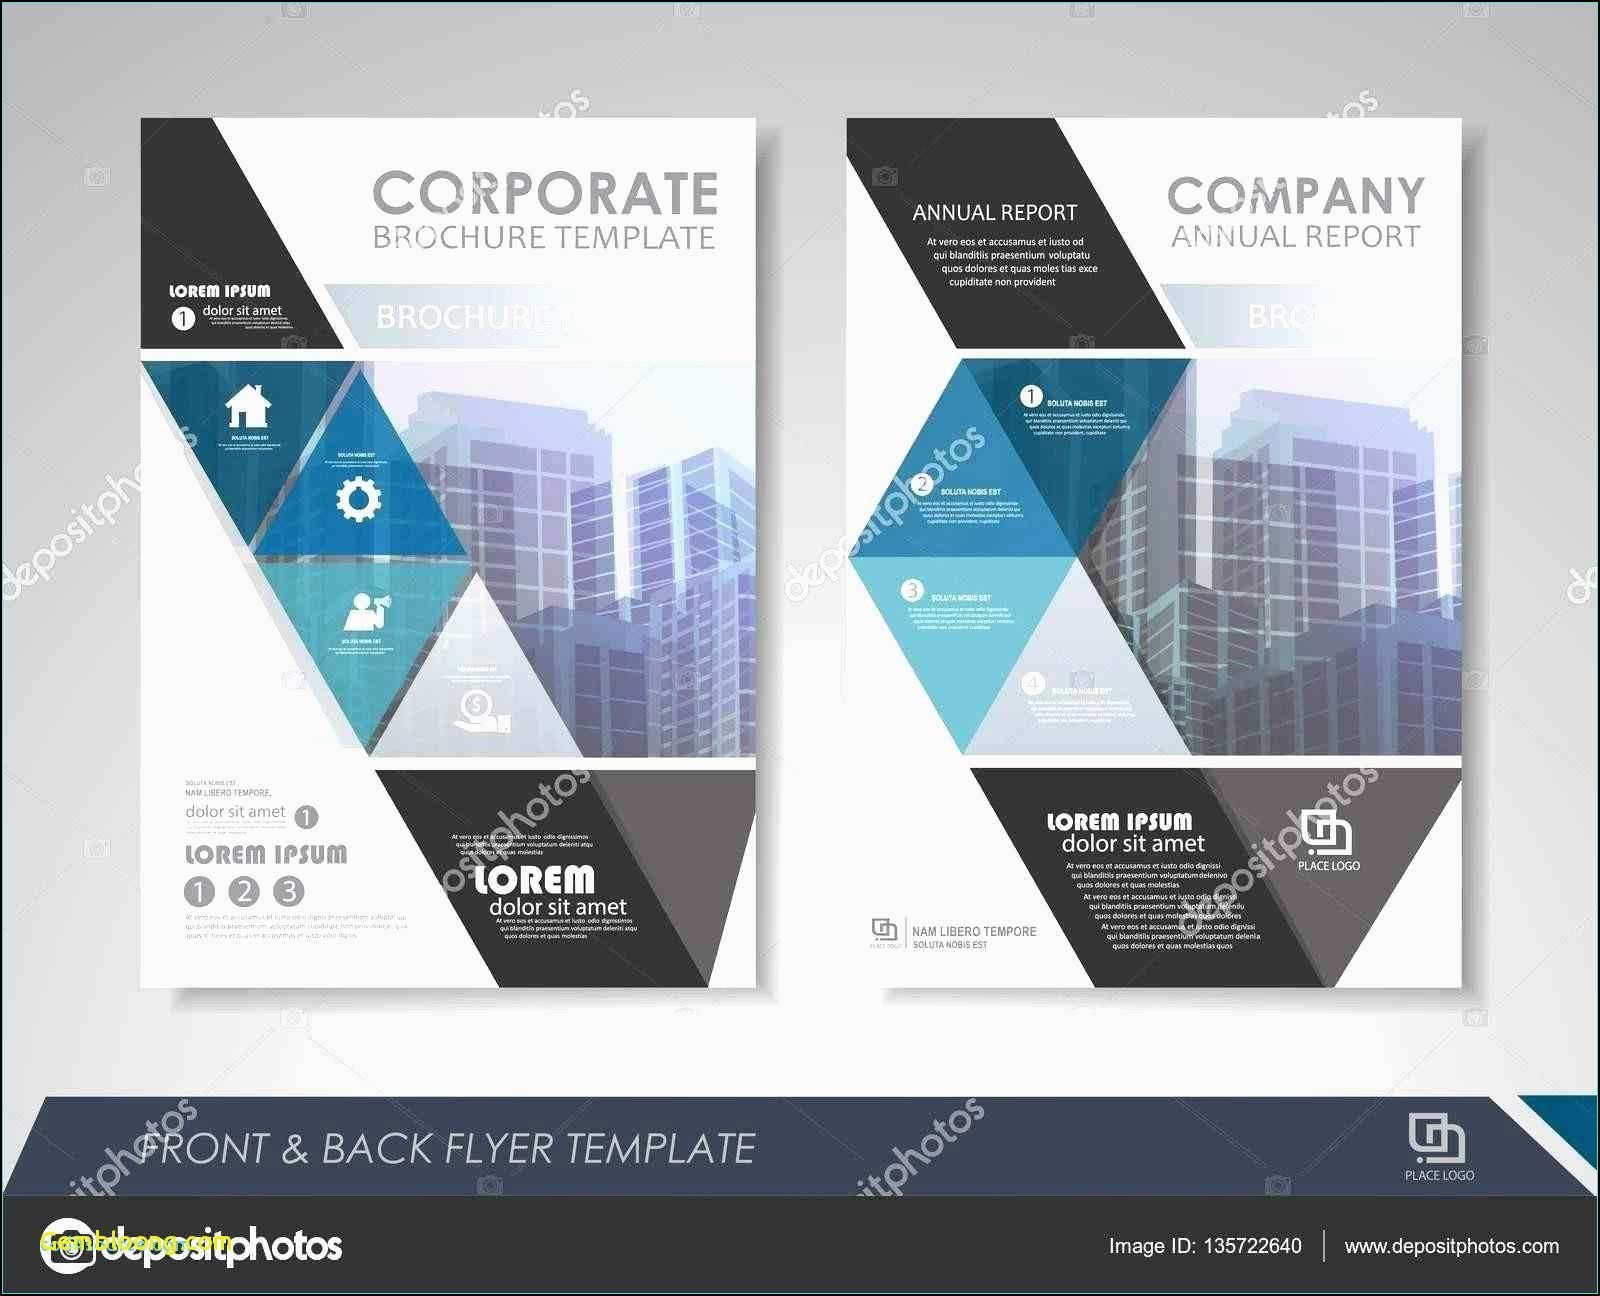 002 Awesome Photoshop Brochure Design Template Free Download High Def Full